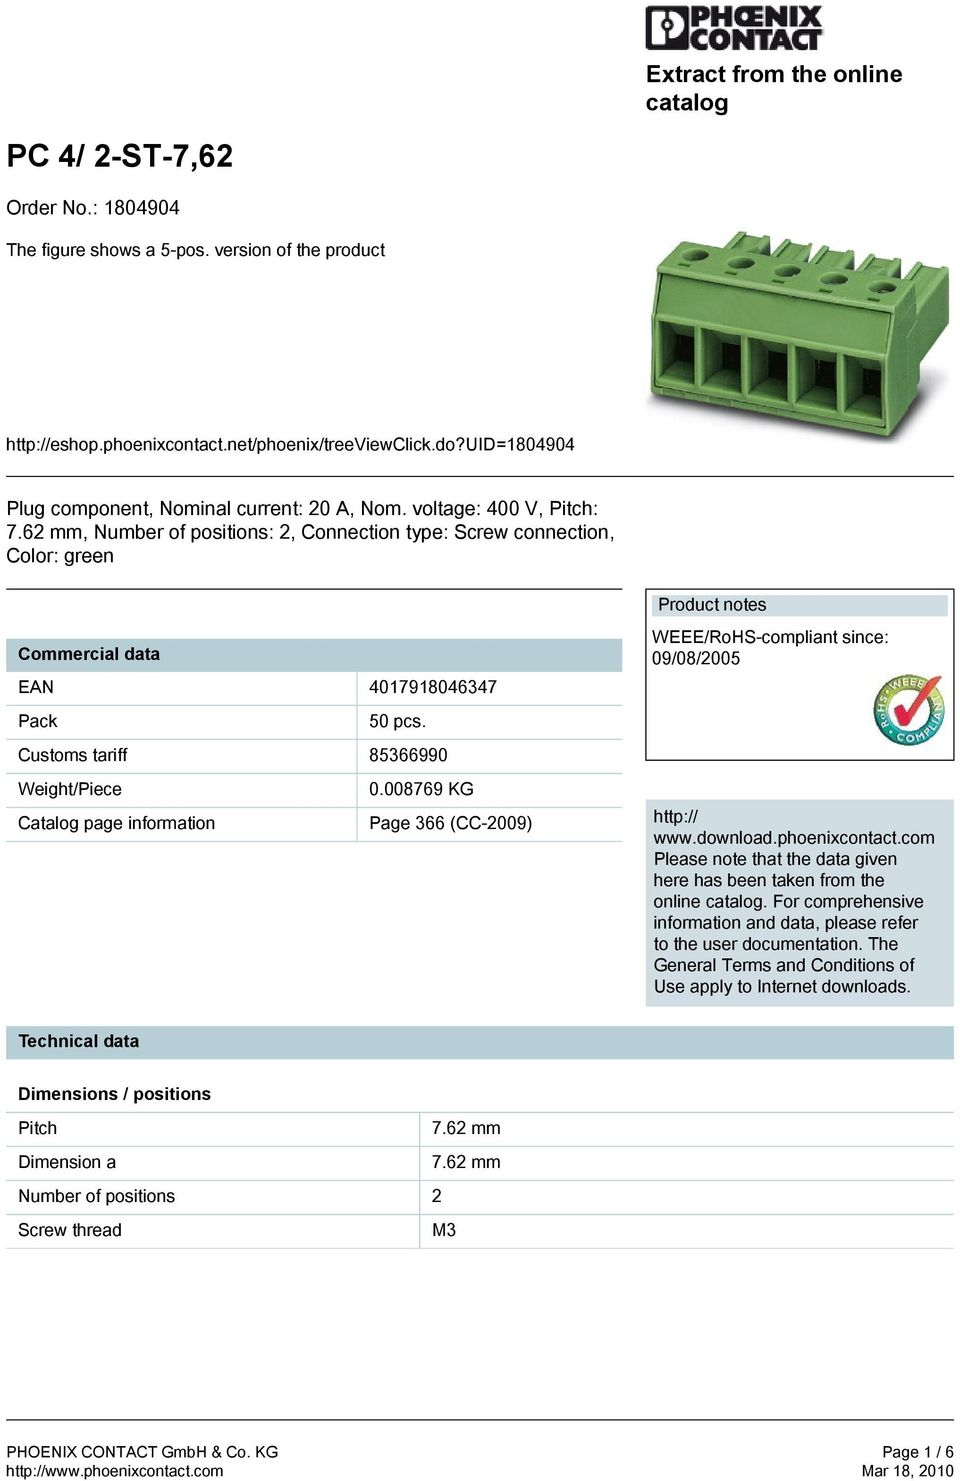 008769 KG Catalog page information Page 366 (CC-2009) Product notes WEEE/RoHS-compliant since: 09/08/2005 http:// www.download.phoenixcontact.